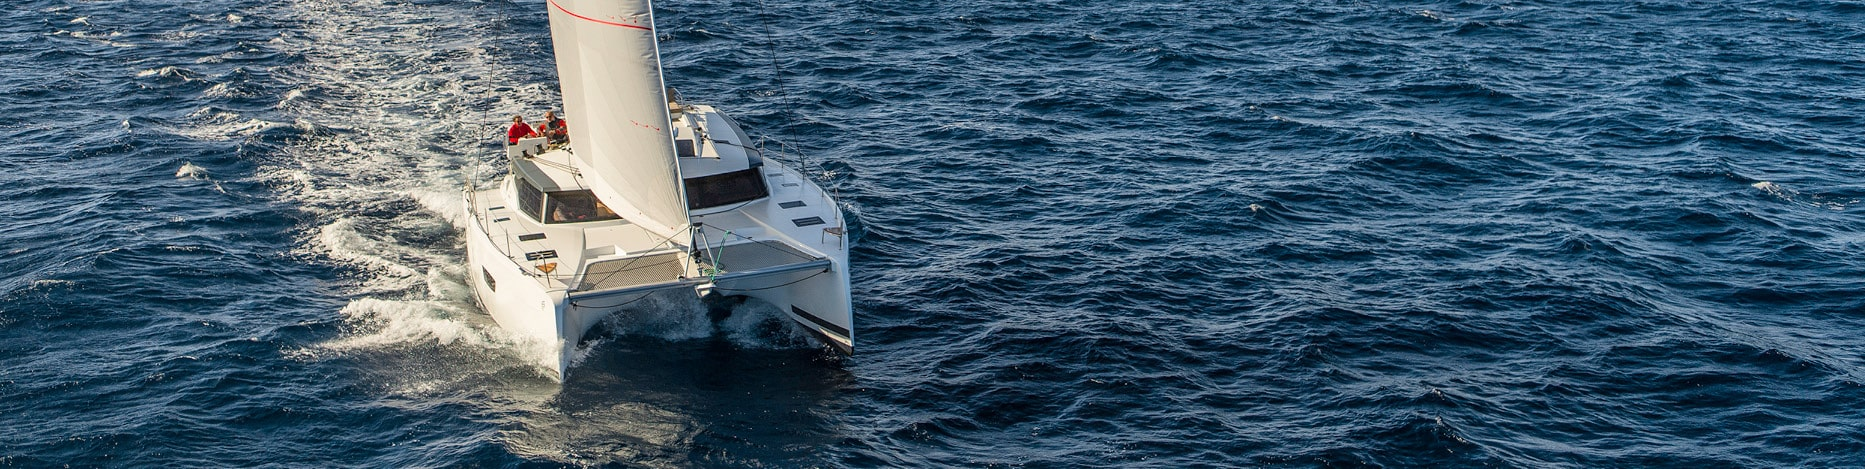 luxury-sailing-catamarans-Fountaine-Pajot